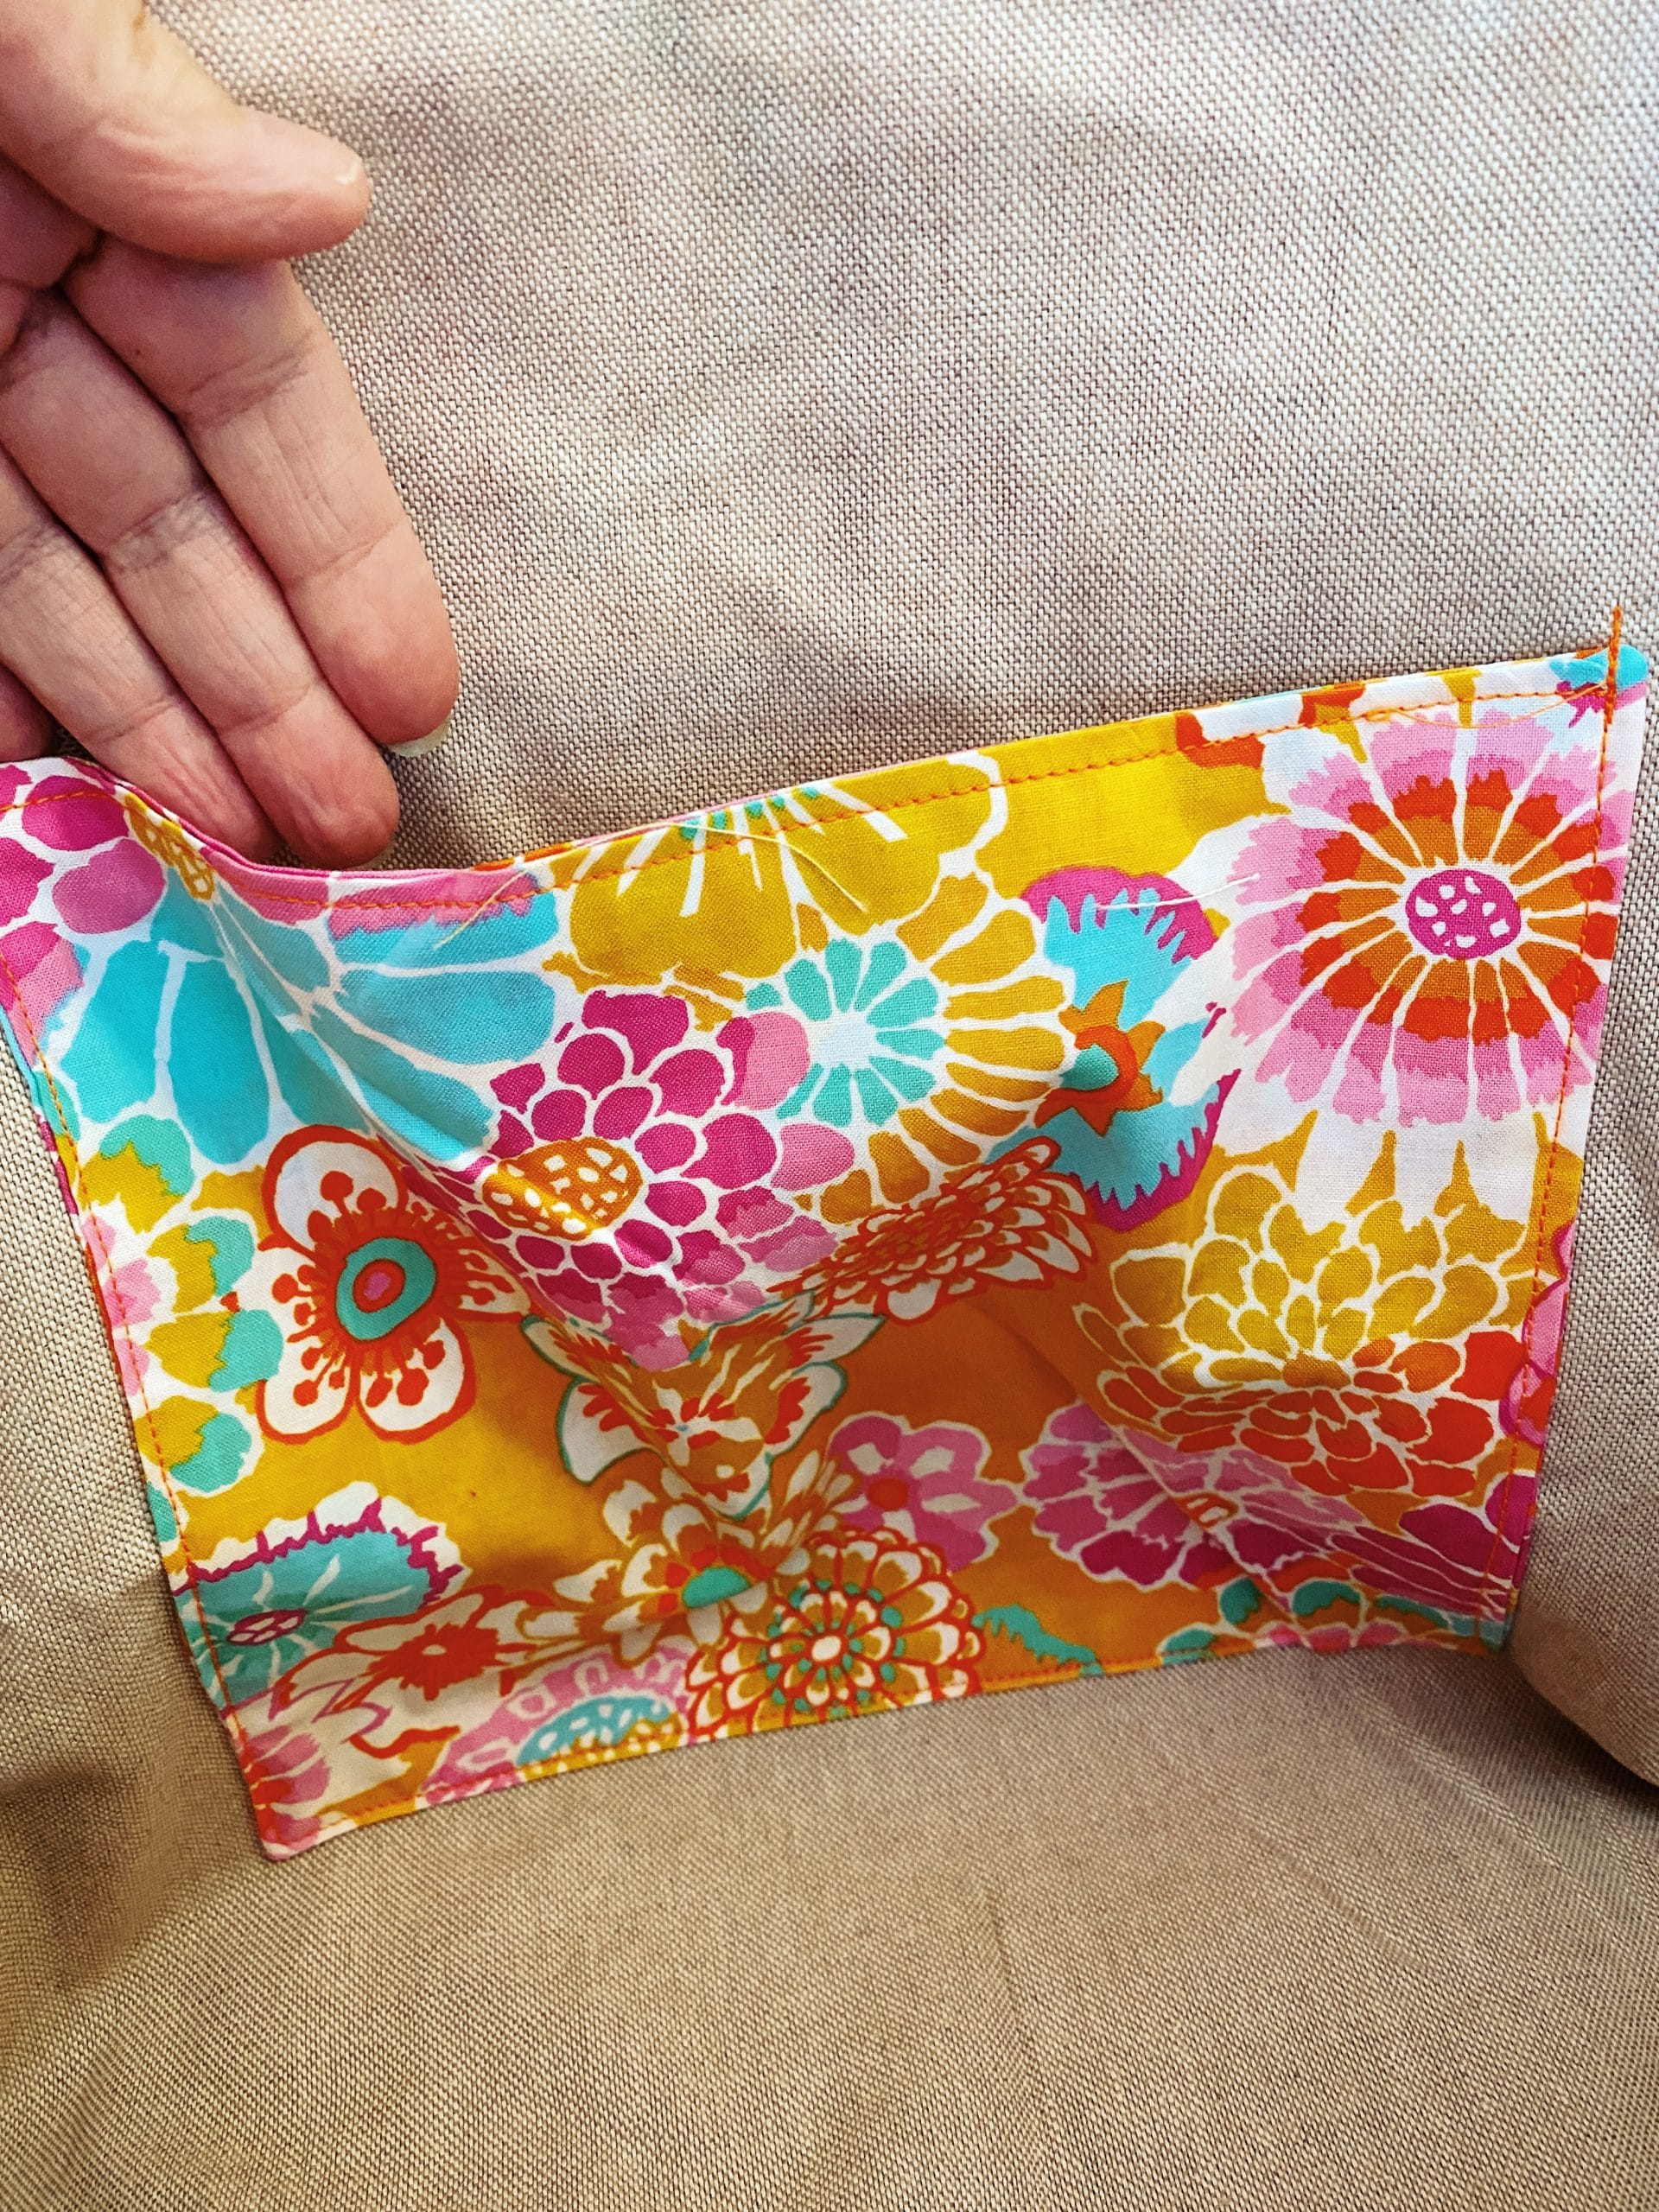 The-Stitch-Sisters-Quilt-As-You-Go-Shopper